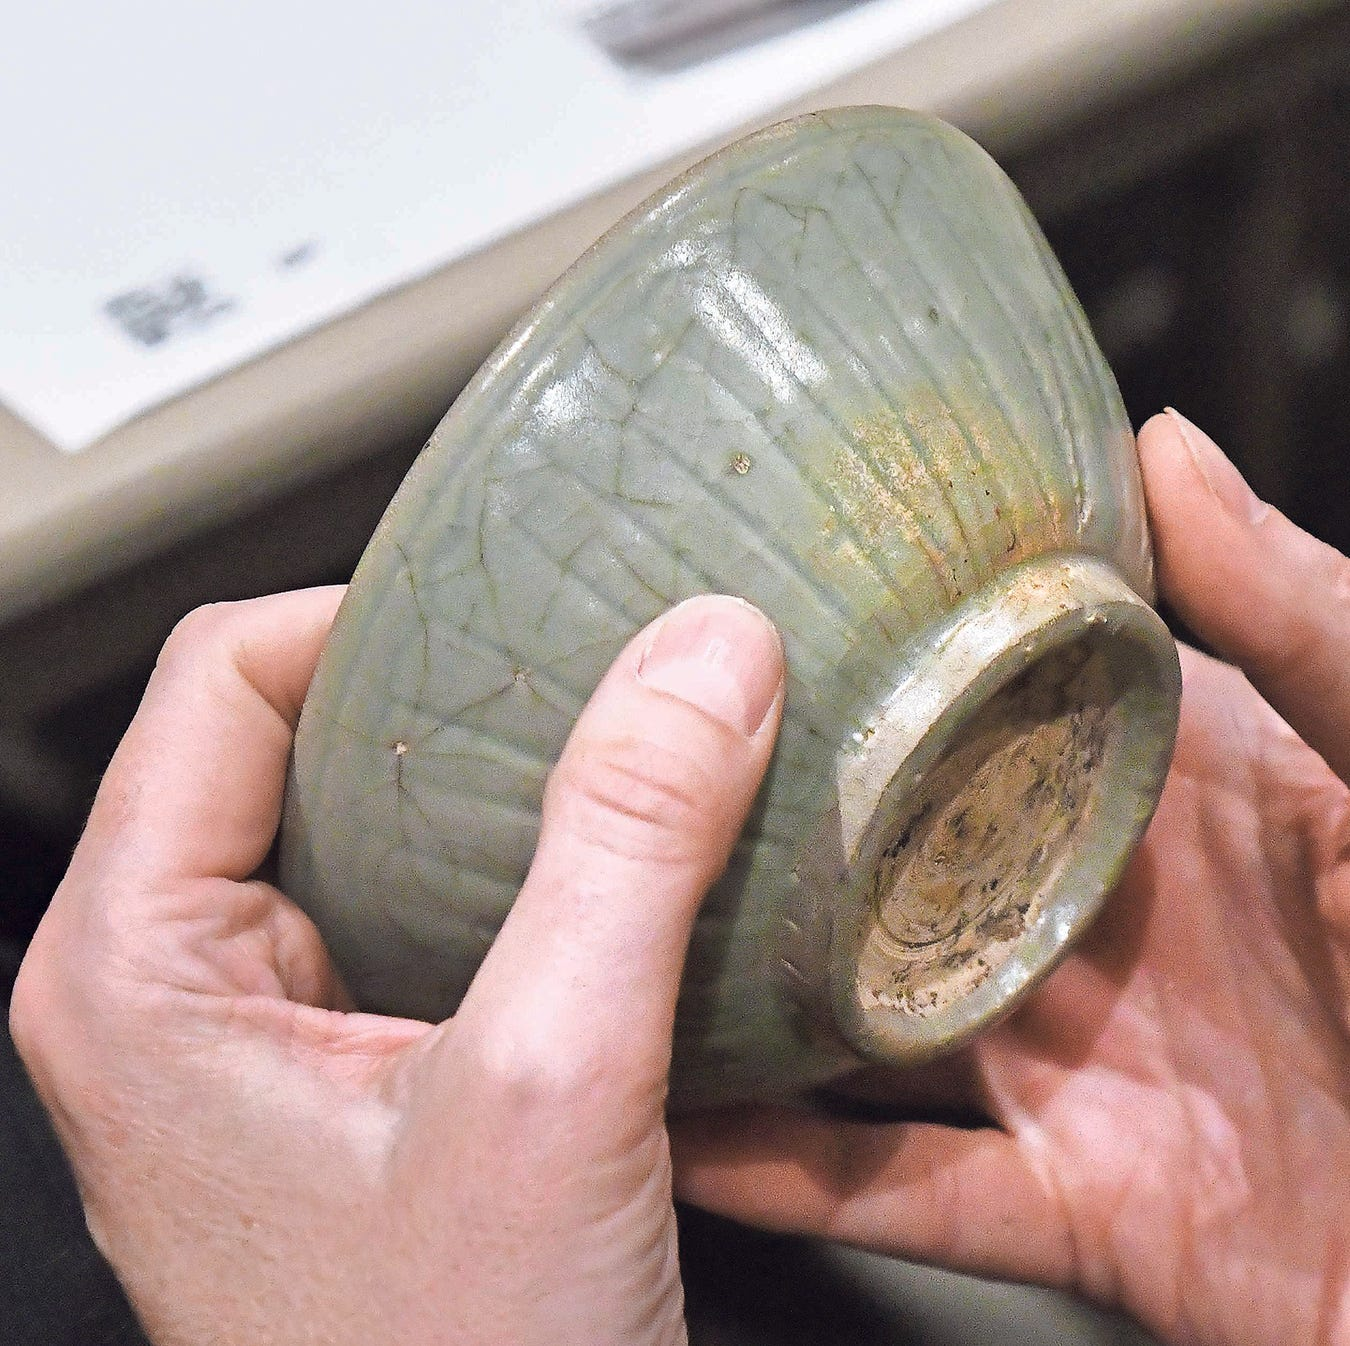 Trash or Treasure: Even without marks, Asian bowl valuable